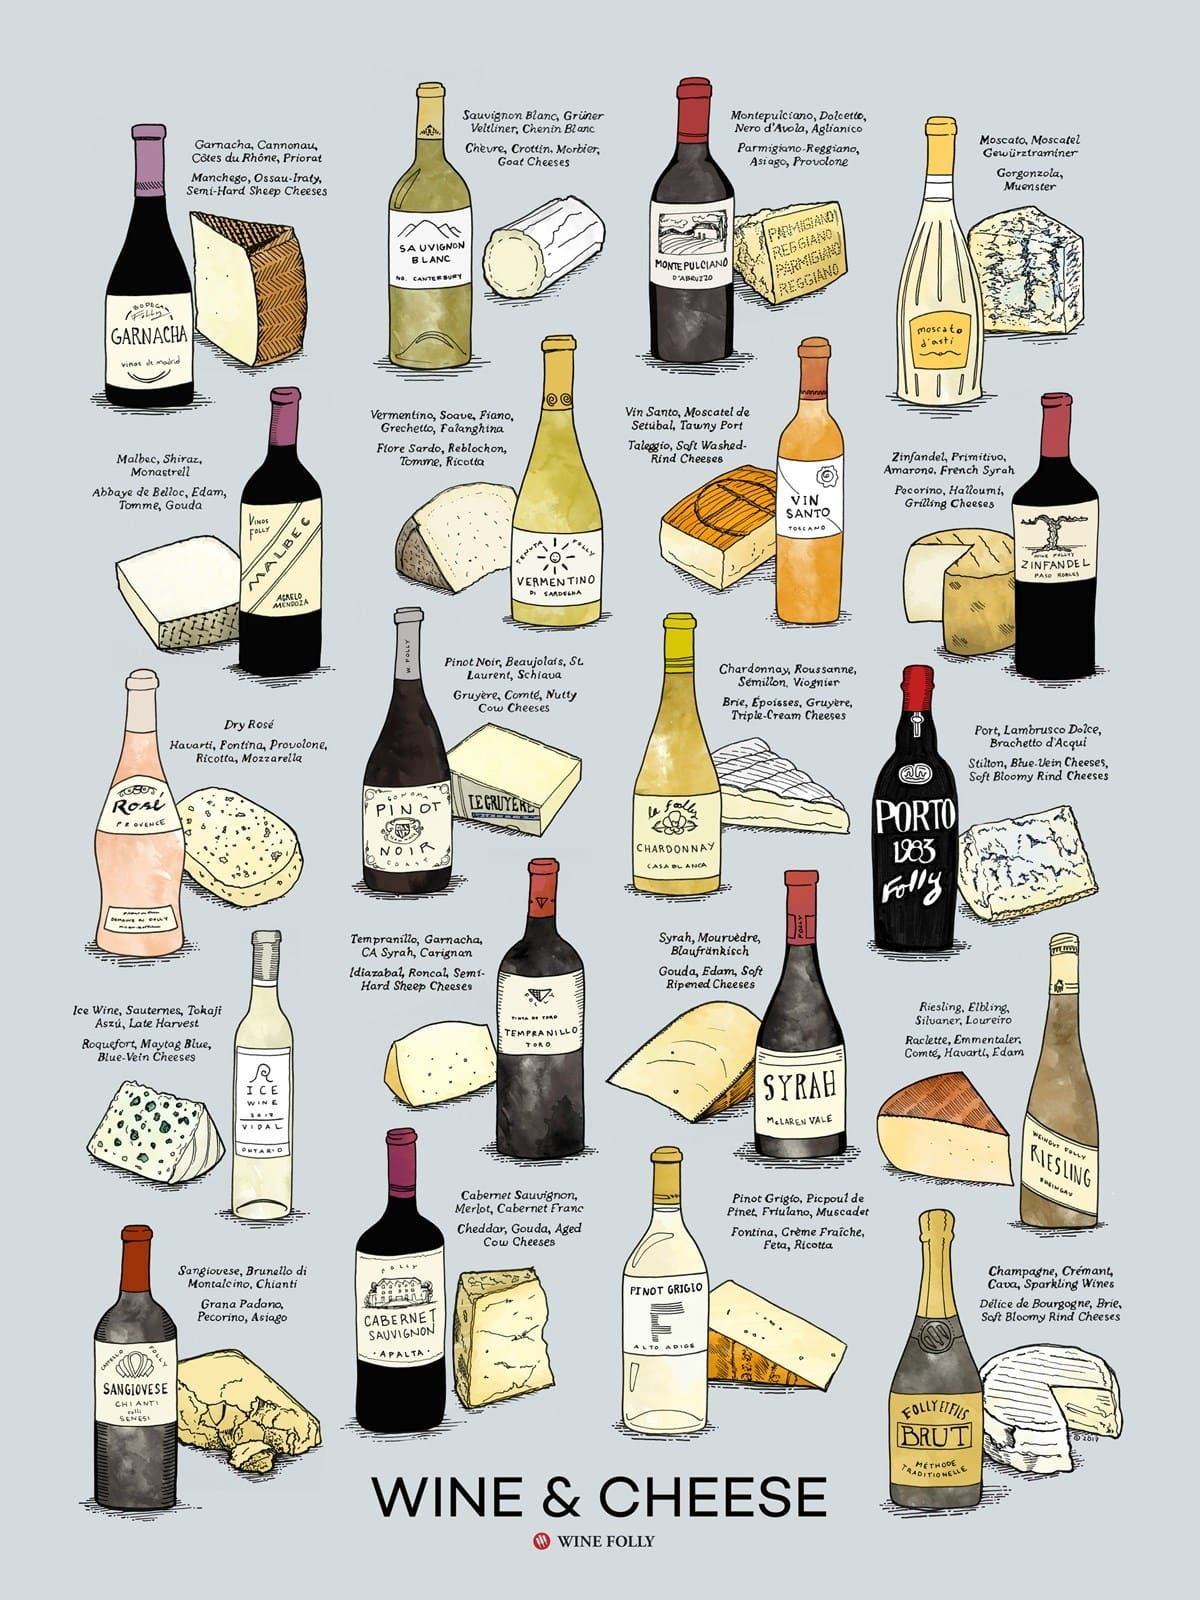 wine-and-cheese-pairing-infographic